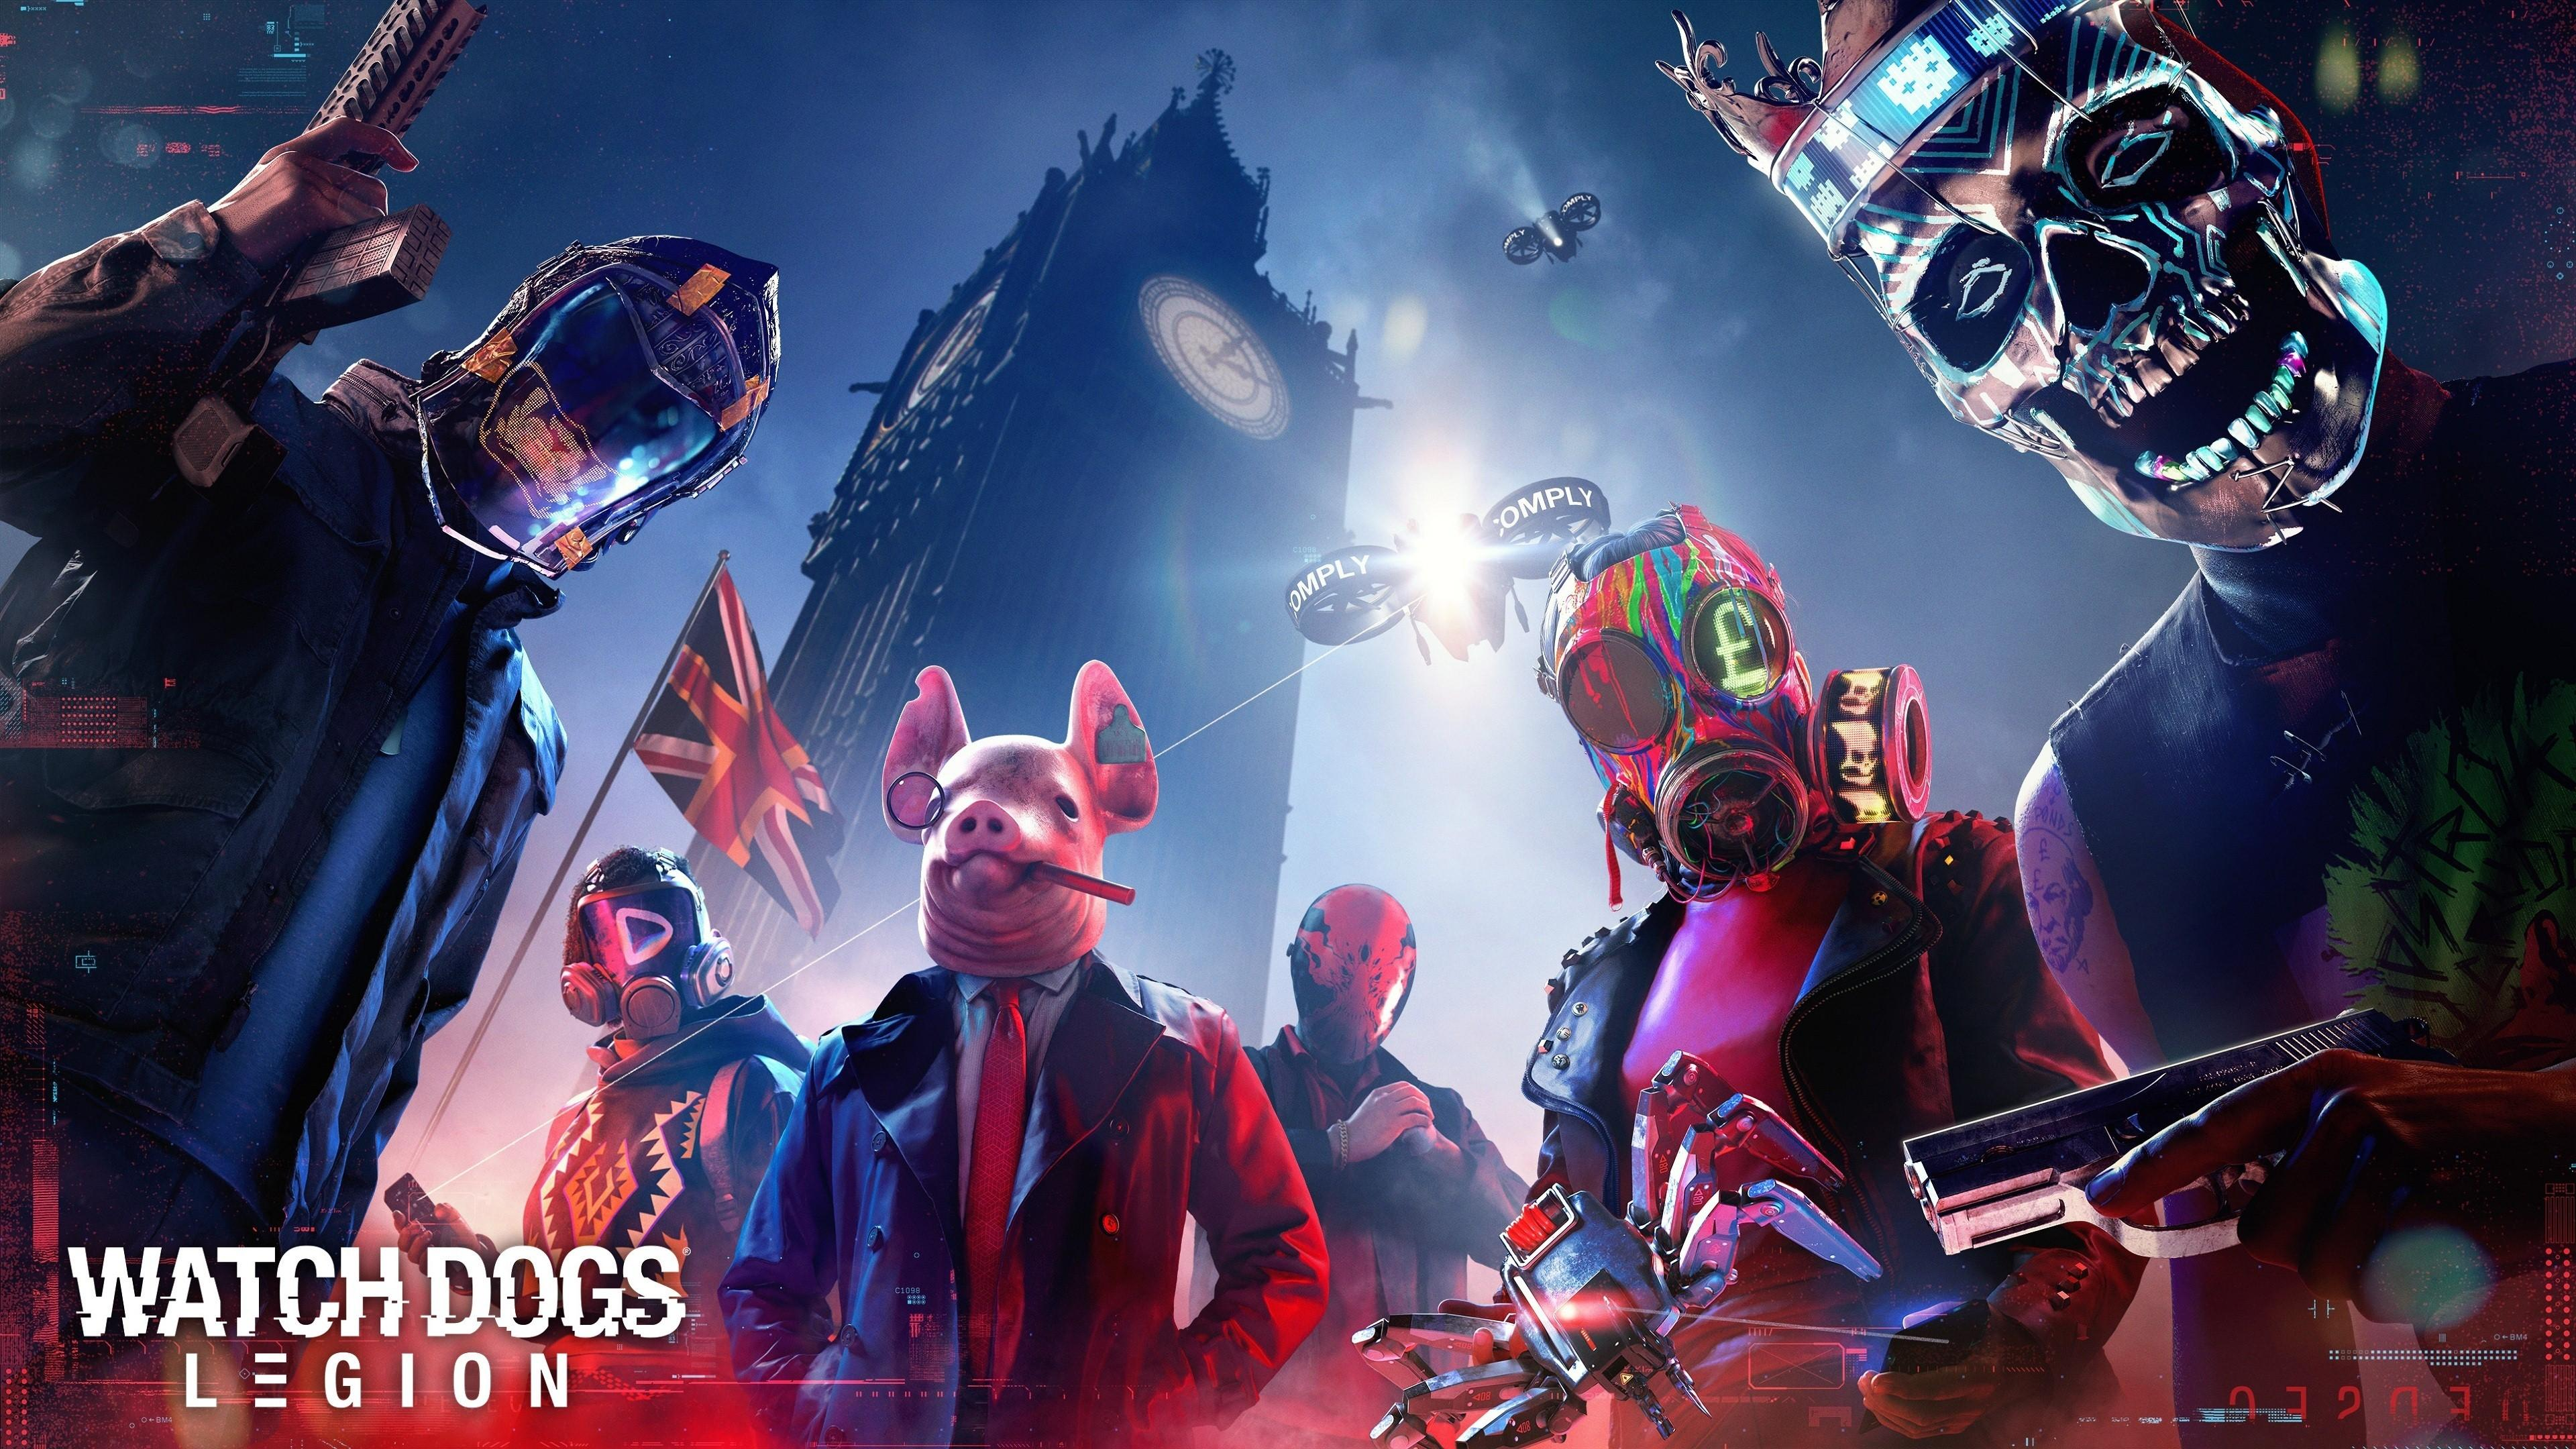 Watch Dogs Legion Game 2020 Wallpapers Wallpaper Cave